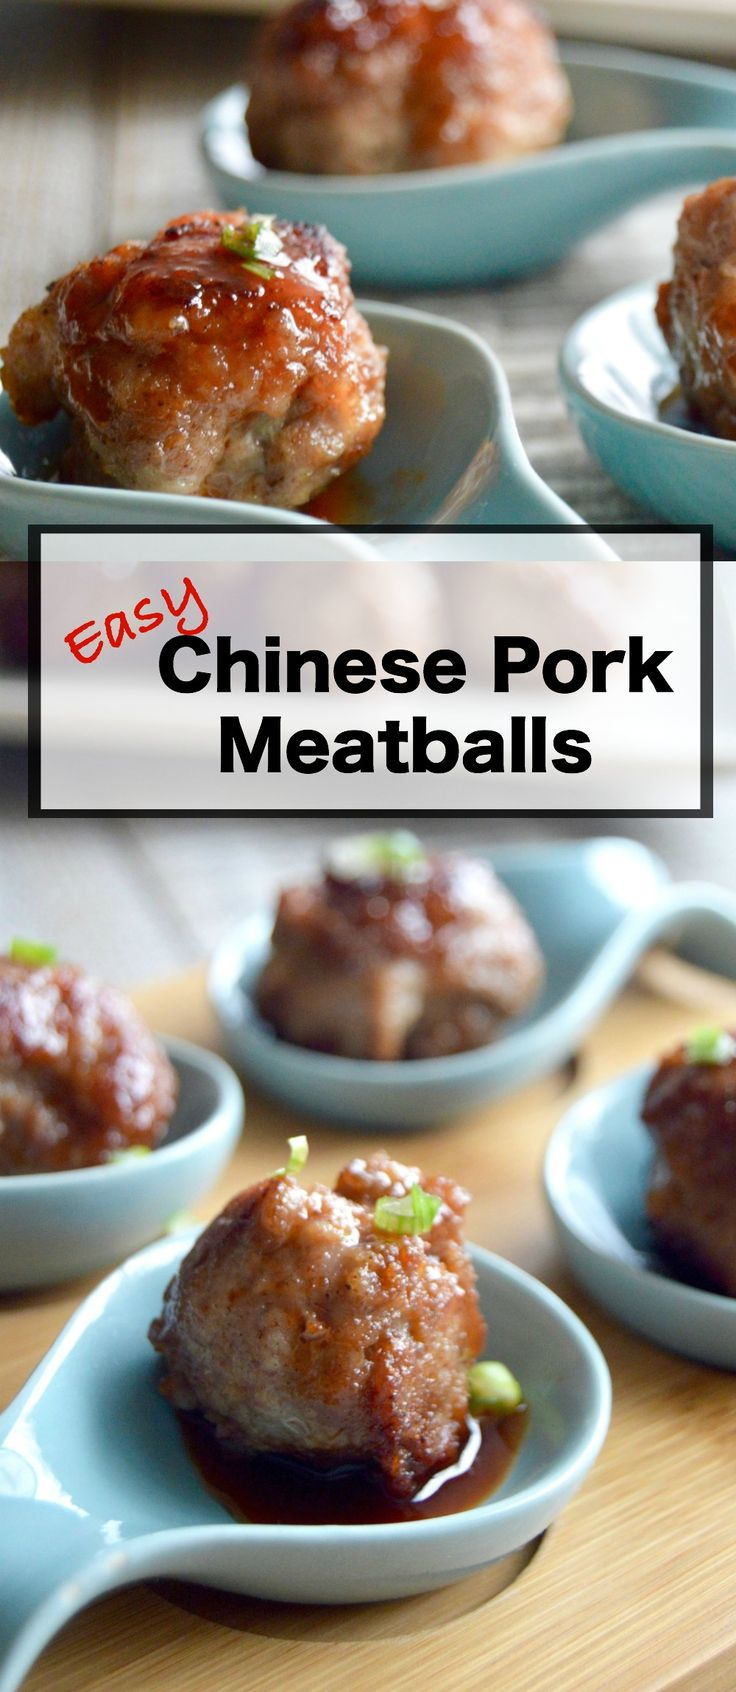 Chinese Pork meatballs: Char Seiw like charring on the edges with flavors hitting notes of sweet and salty in each that are ideal for a delicious appetizer in 20 minutes.